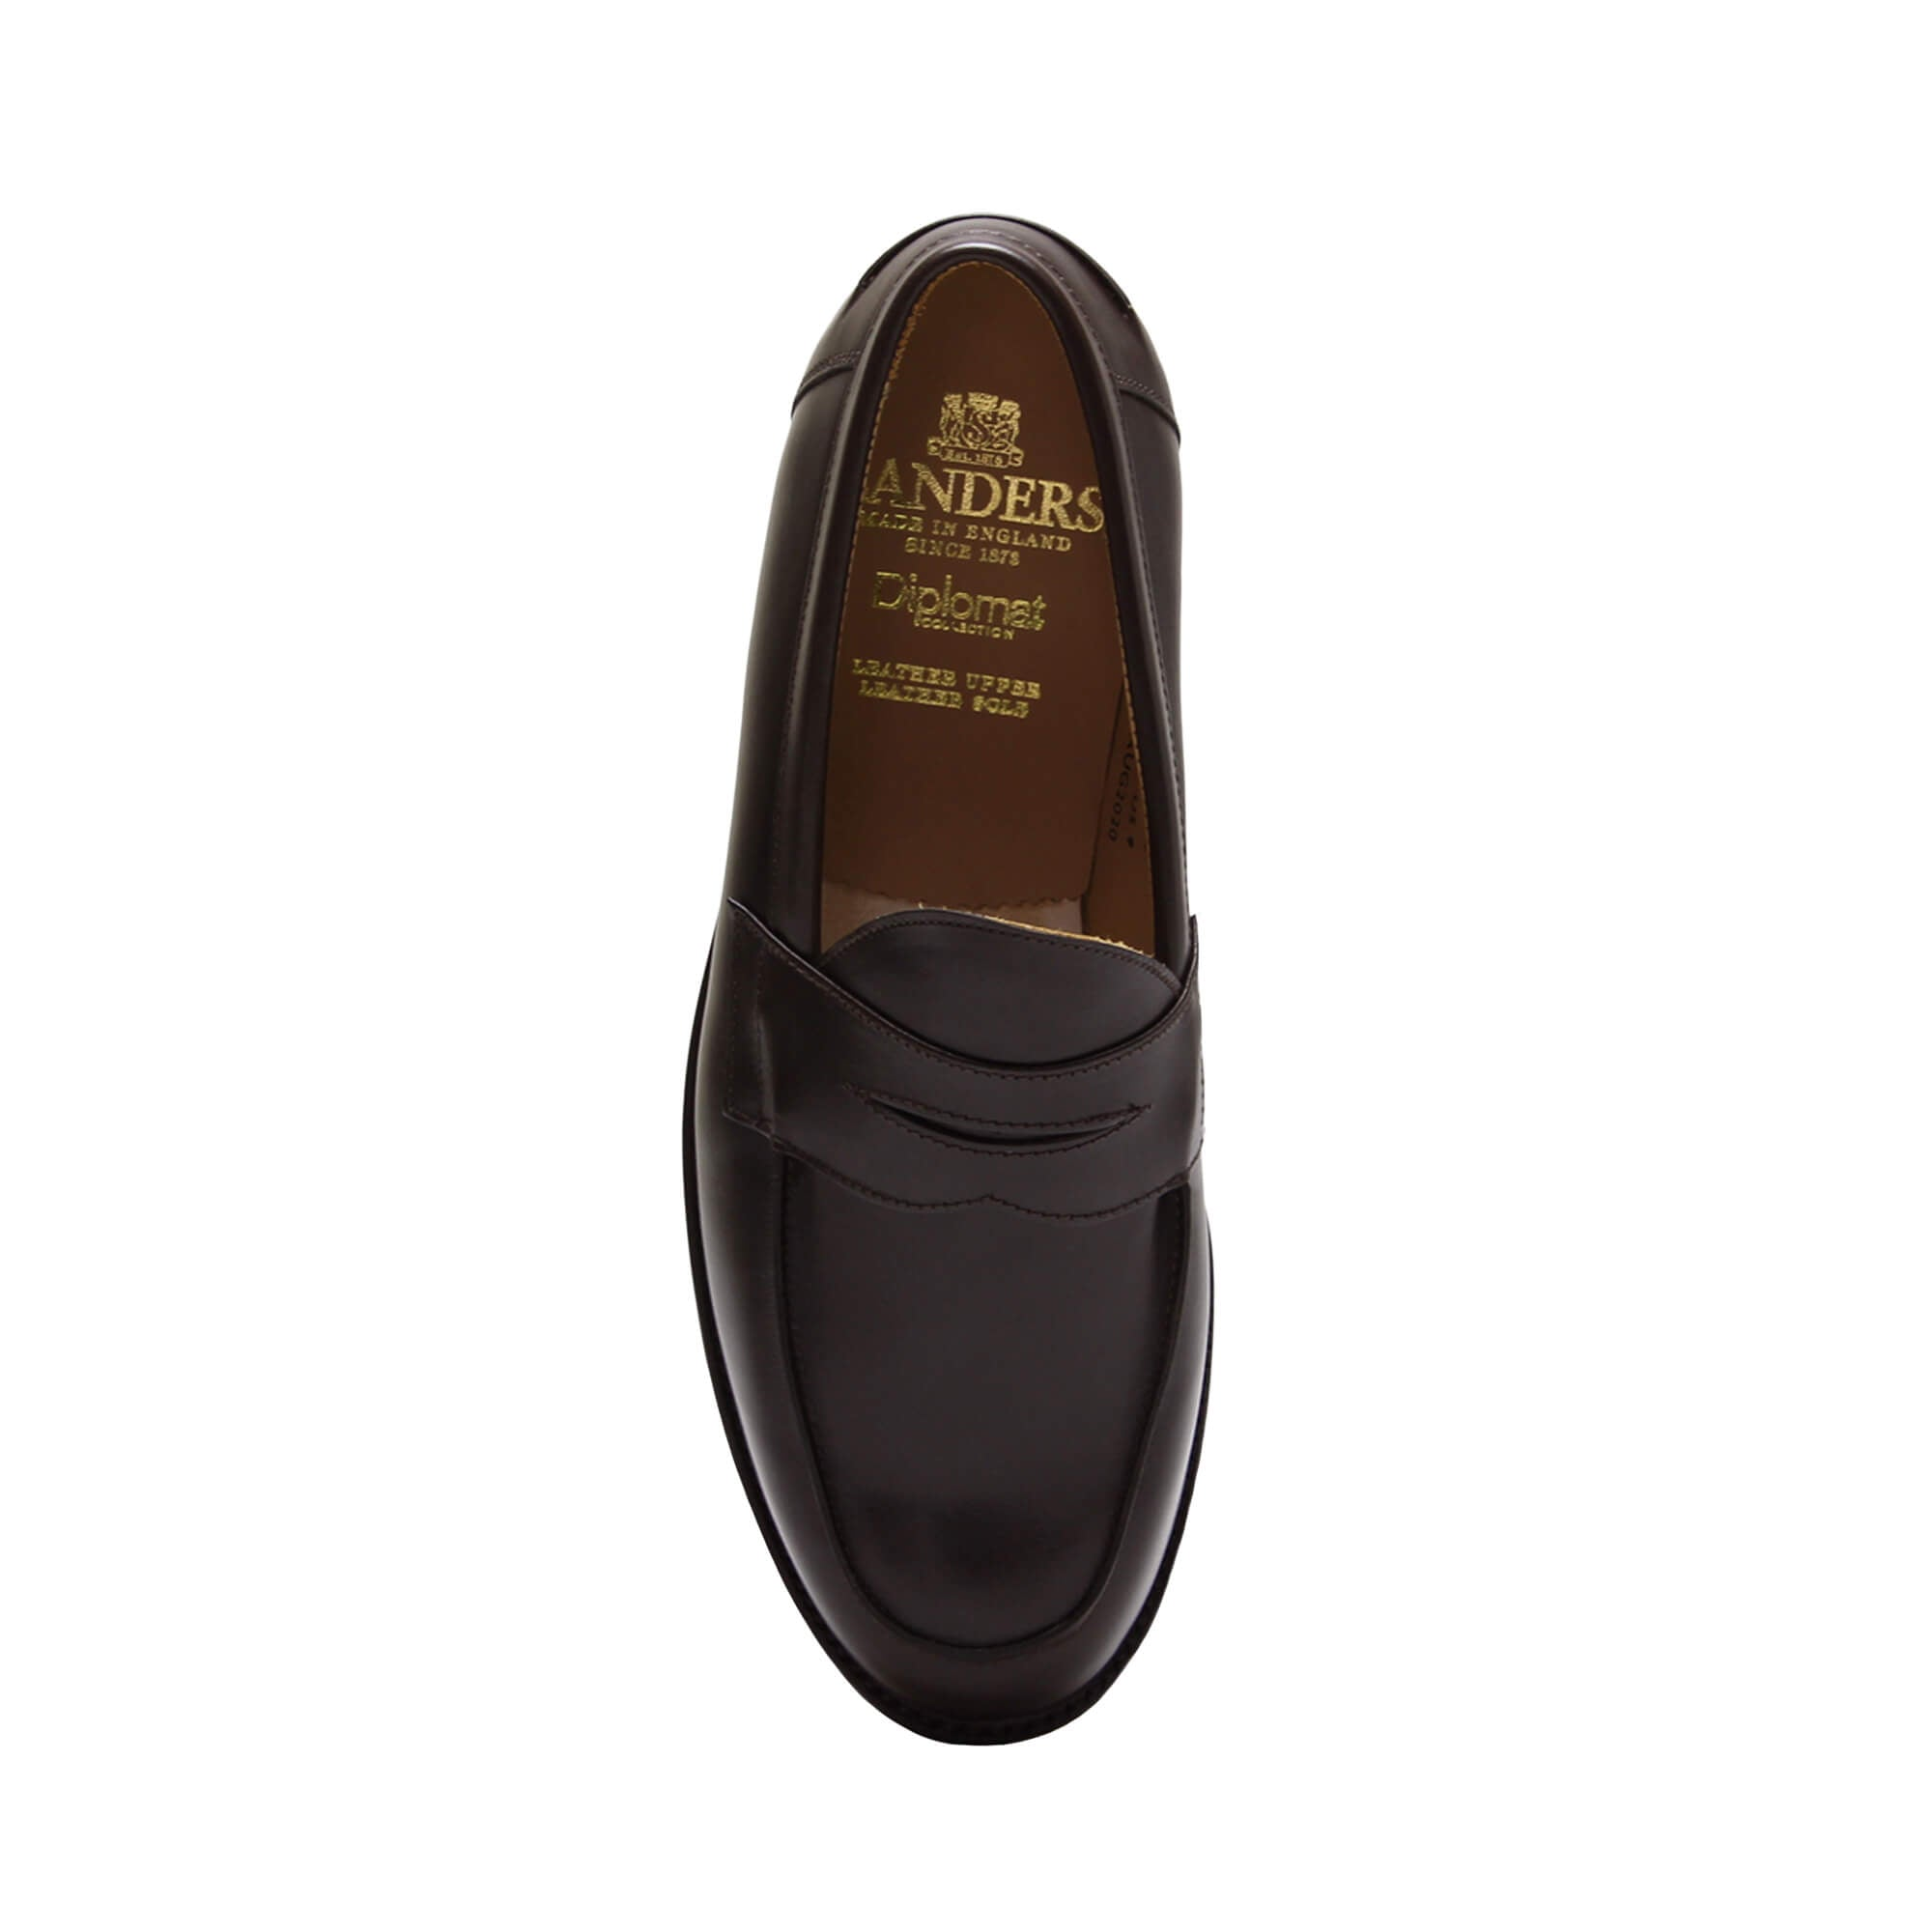 Sanders Men's Madrid Leather Slip-On Shoes 9486/TD